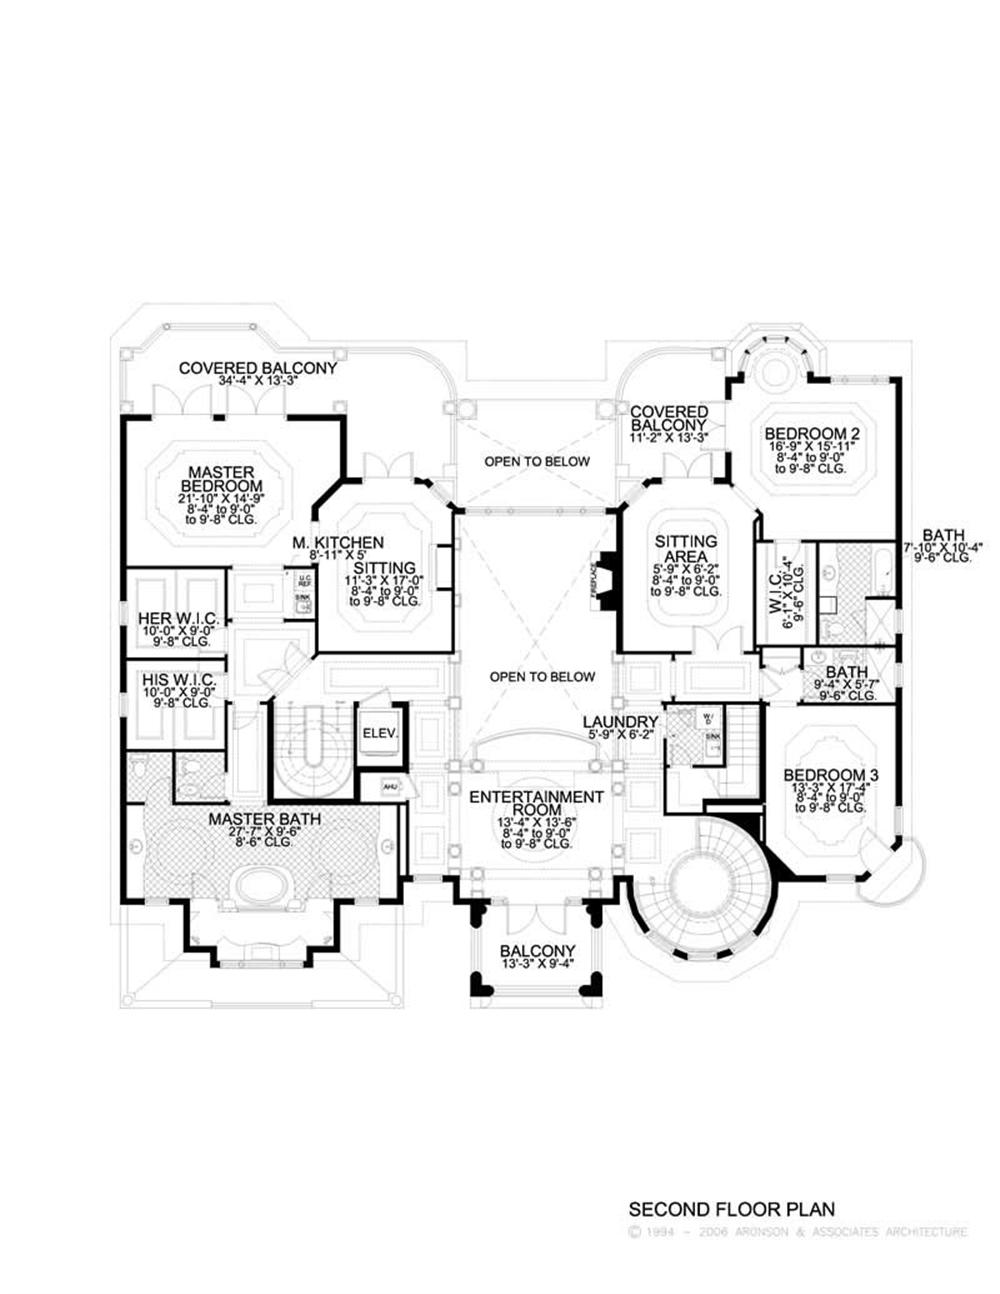 HOUSE PLAN FLOOR PLANS